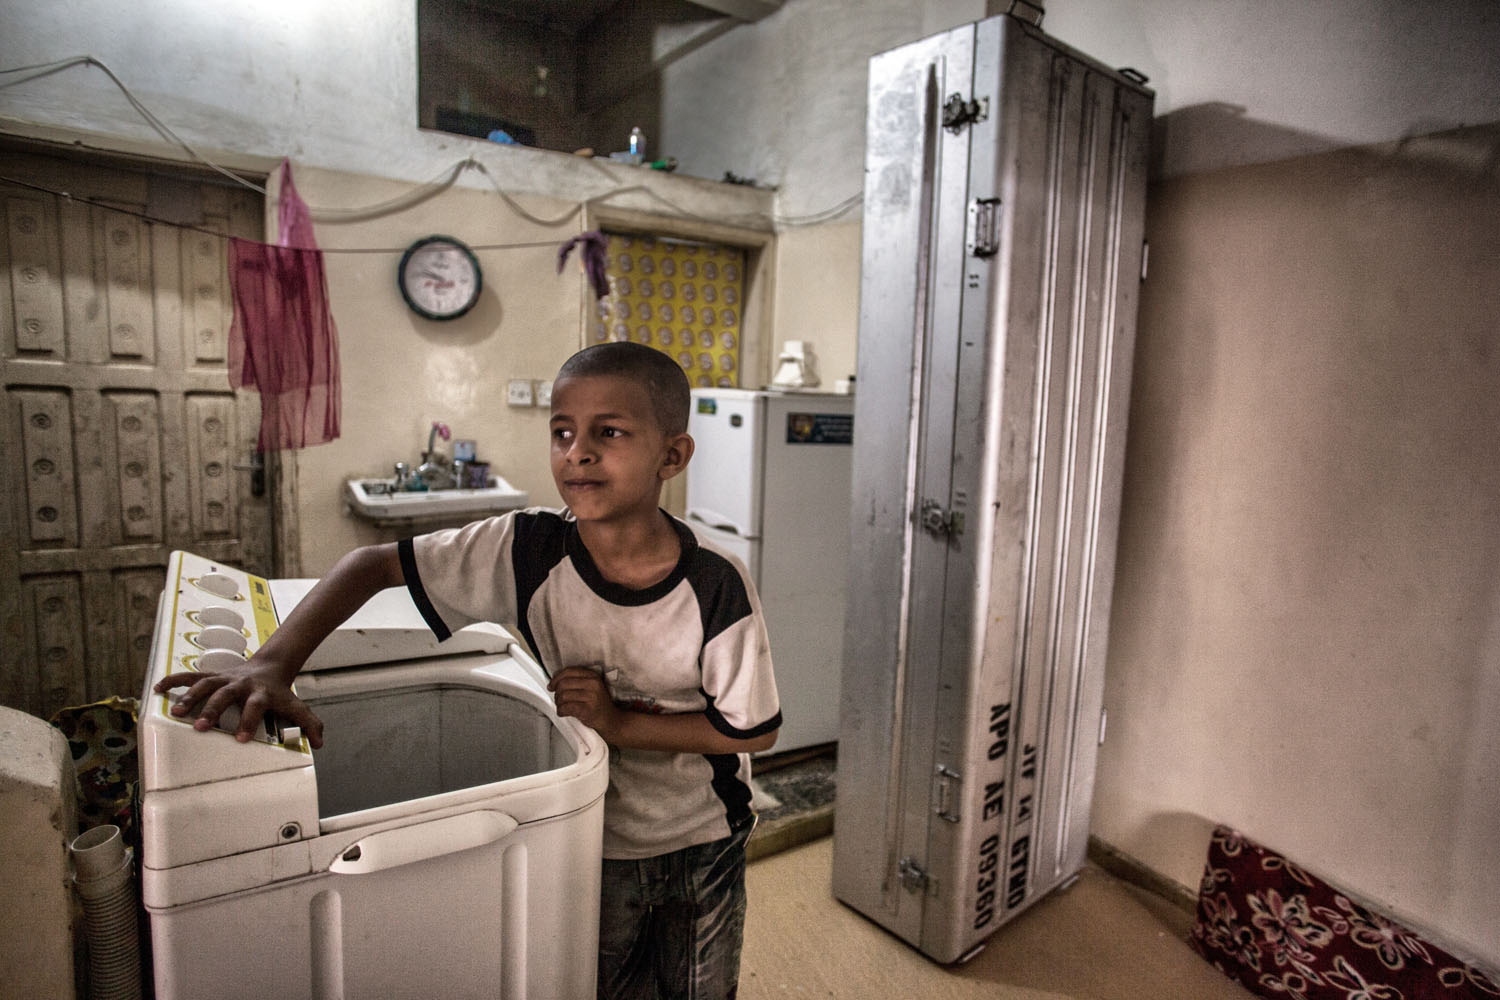 A young Latif family member stands next to the steel coffin that Adnan Latif's body was transported in, from Guantanamo back to Yemen in Taiz. The family has decided to keep the coffin in their laundry room and will not dispose of it until the truth of Adnan's death is made public.